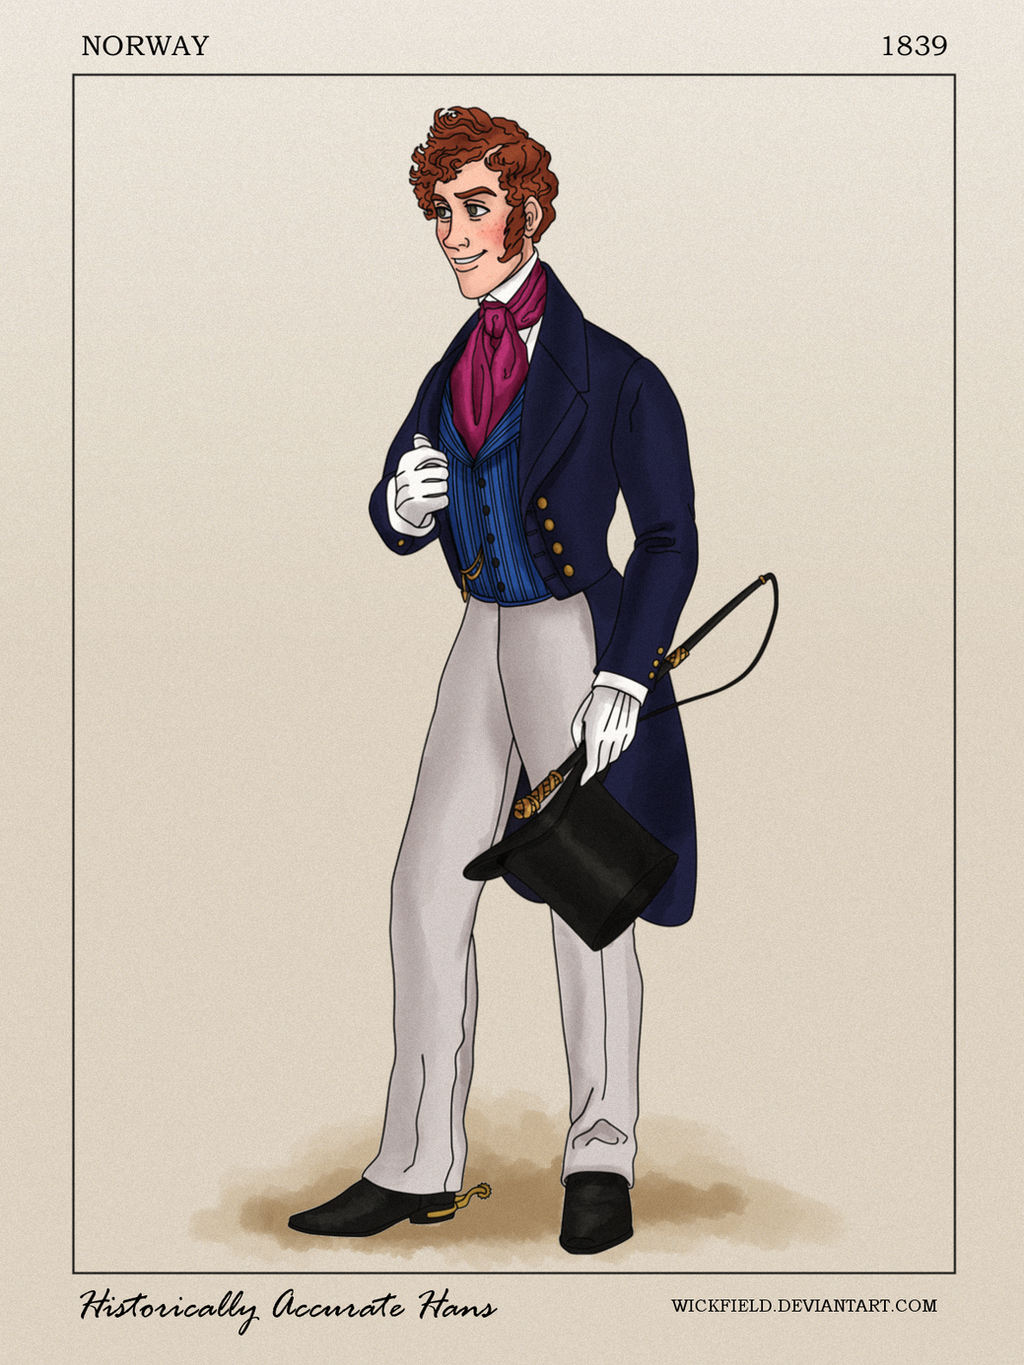 Historically Accurate Hans by Wickfield